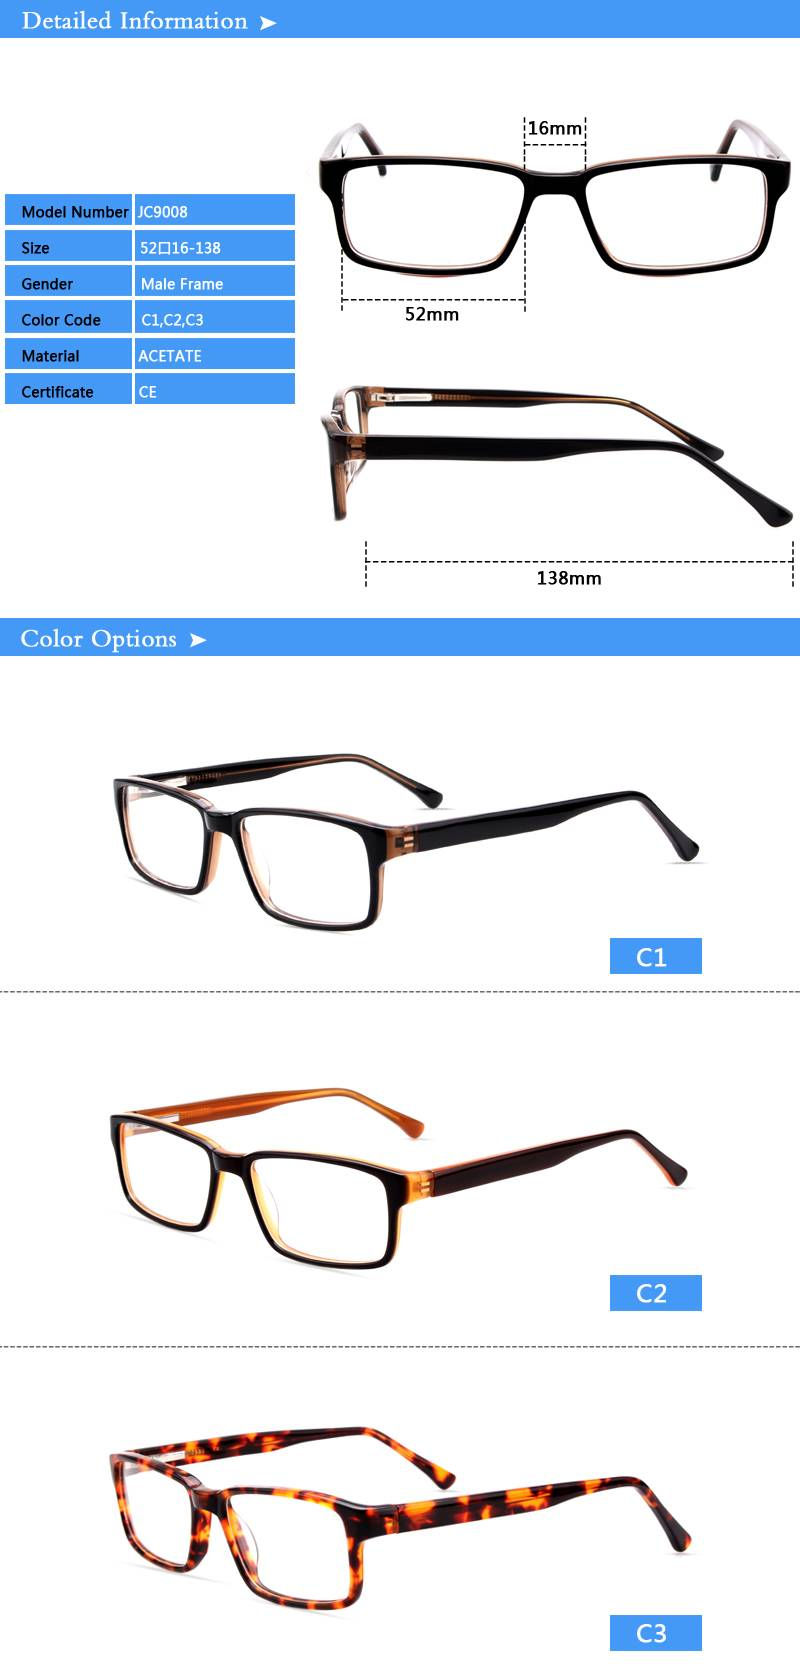 Fashion design acetate eyewear optical frame JC9008 ready in stock